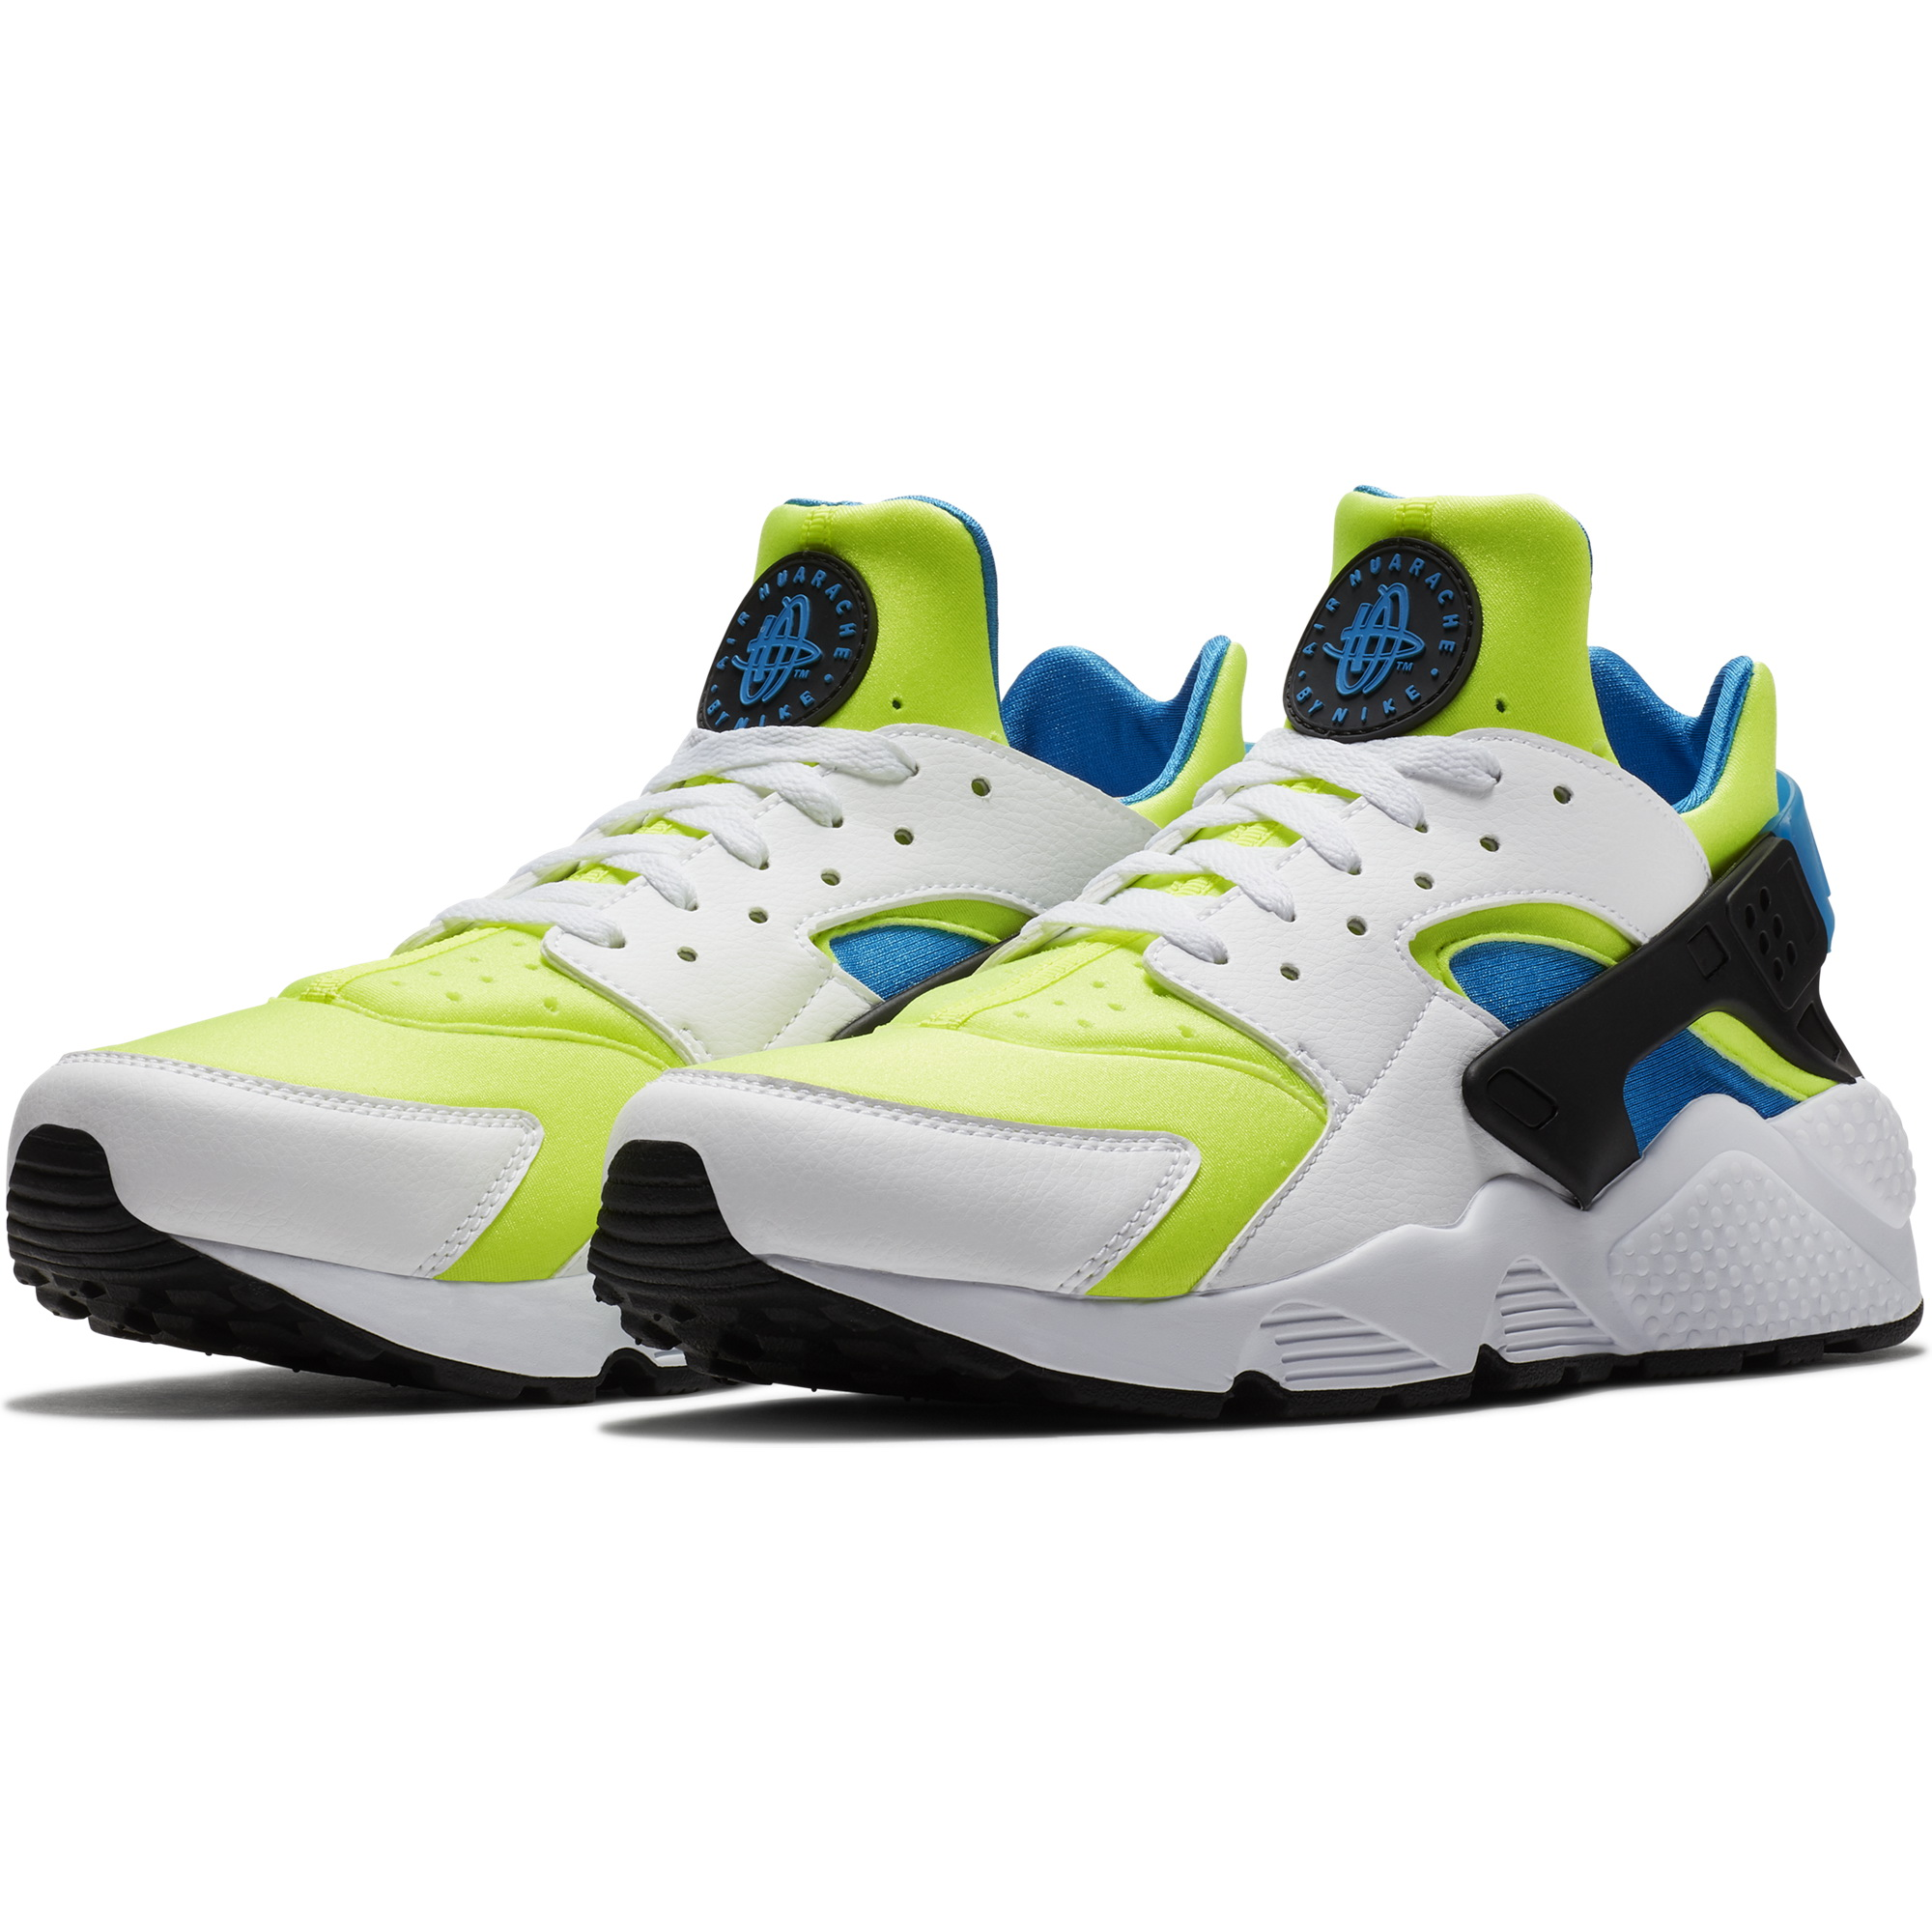 14ff780c041a ... italy nike air huarache run se mens sneakers at4254 101 56776 bd36a